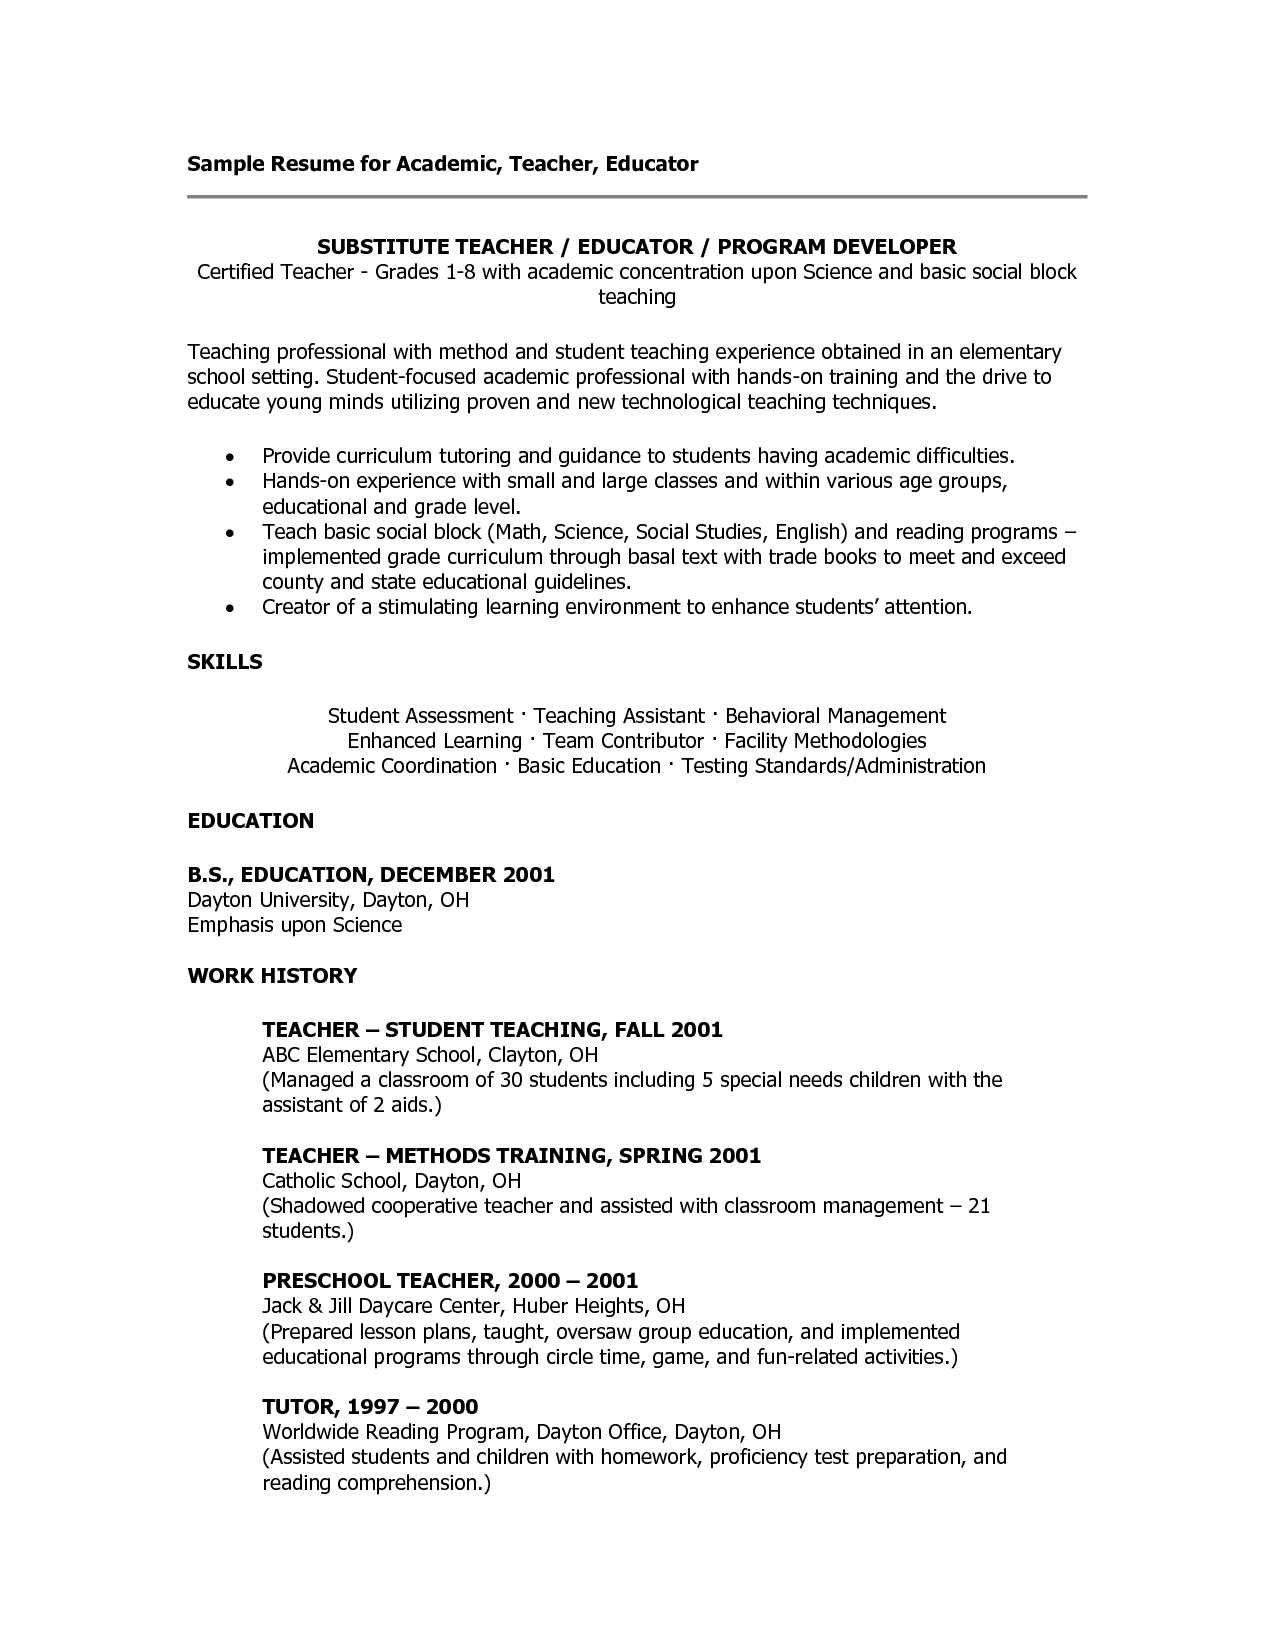 Education Resume Template Sample Teacher Resumes  Substitute Teacher Resume  Fcs